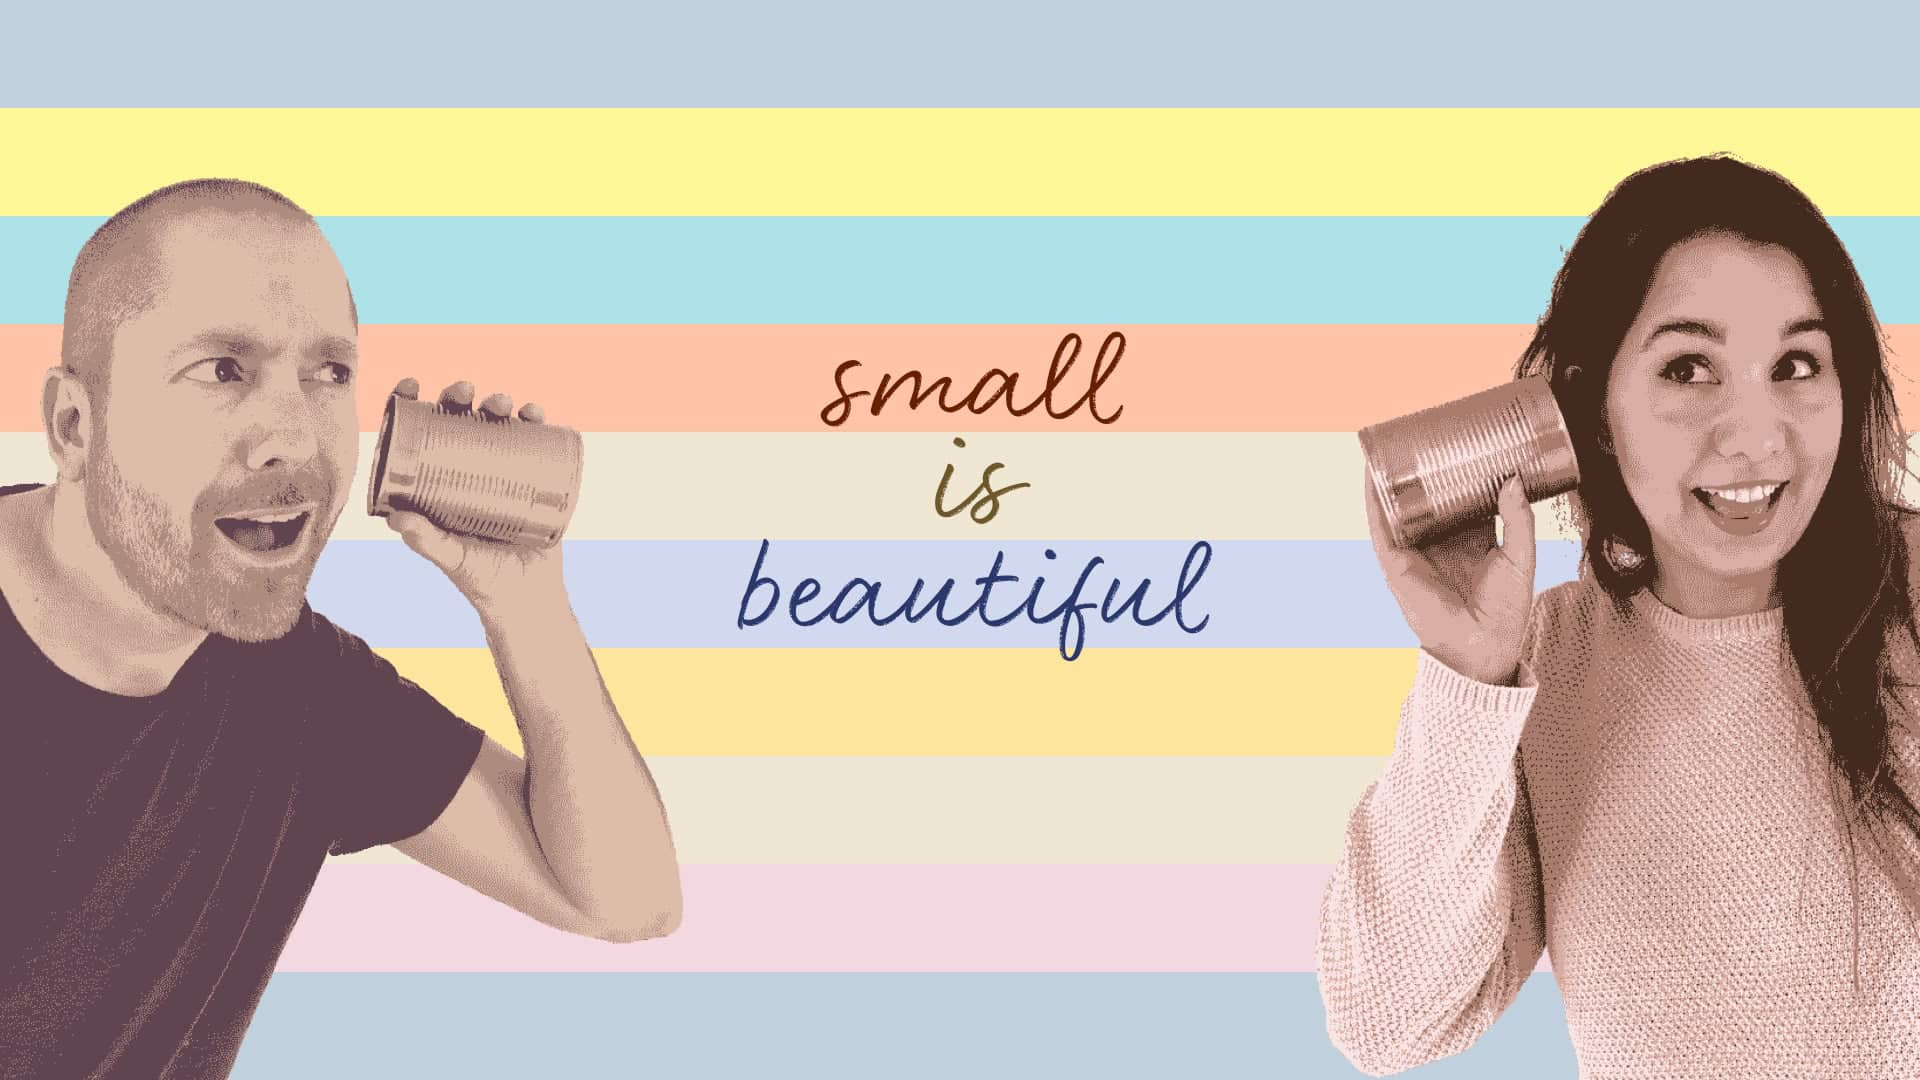 .hugo/content/videos/small-is-beautiful-11/small-is-beautiful.jpg